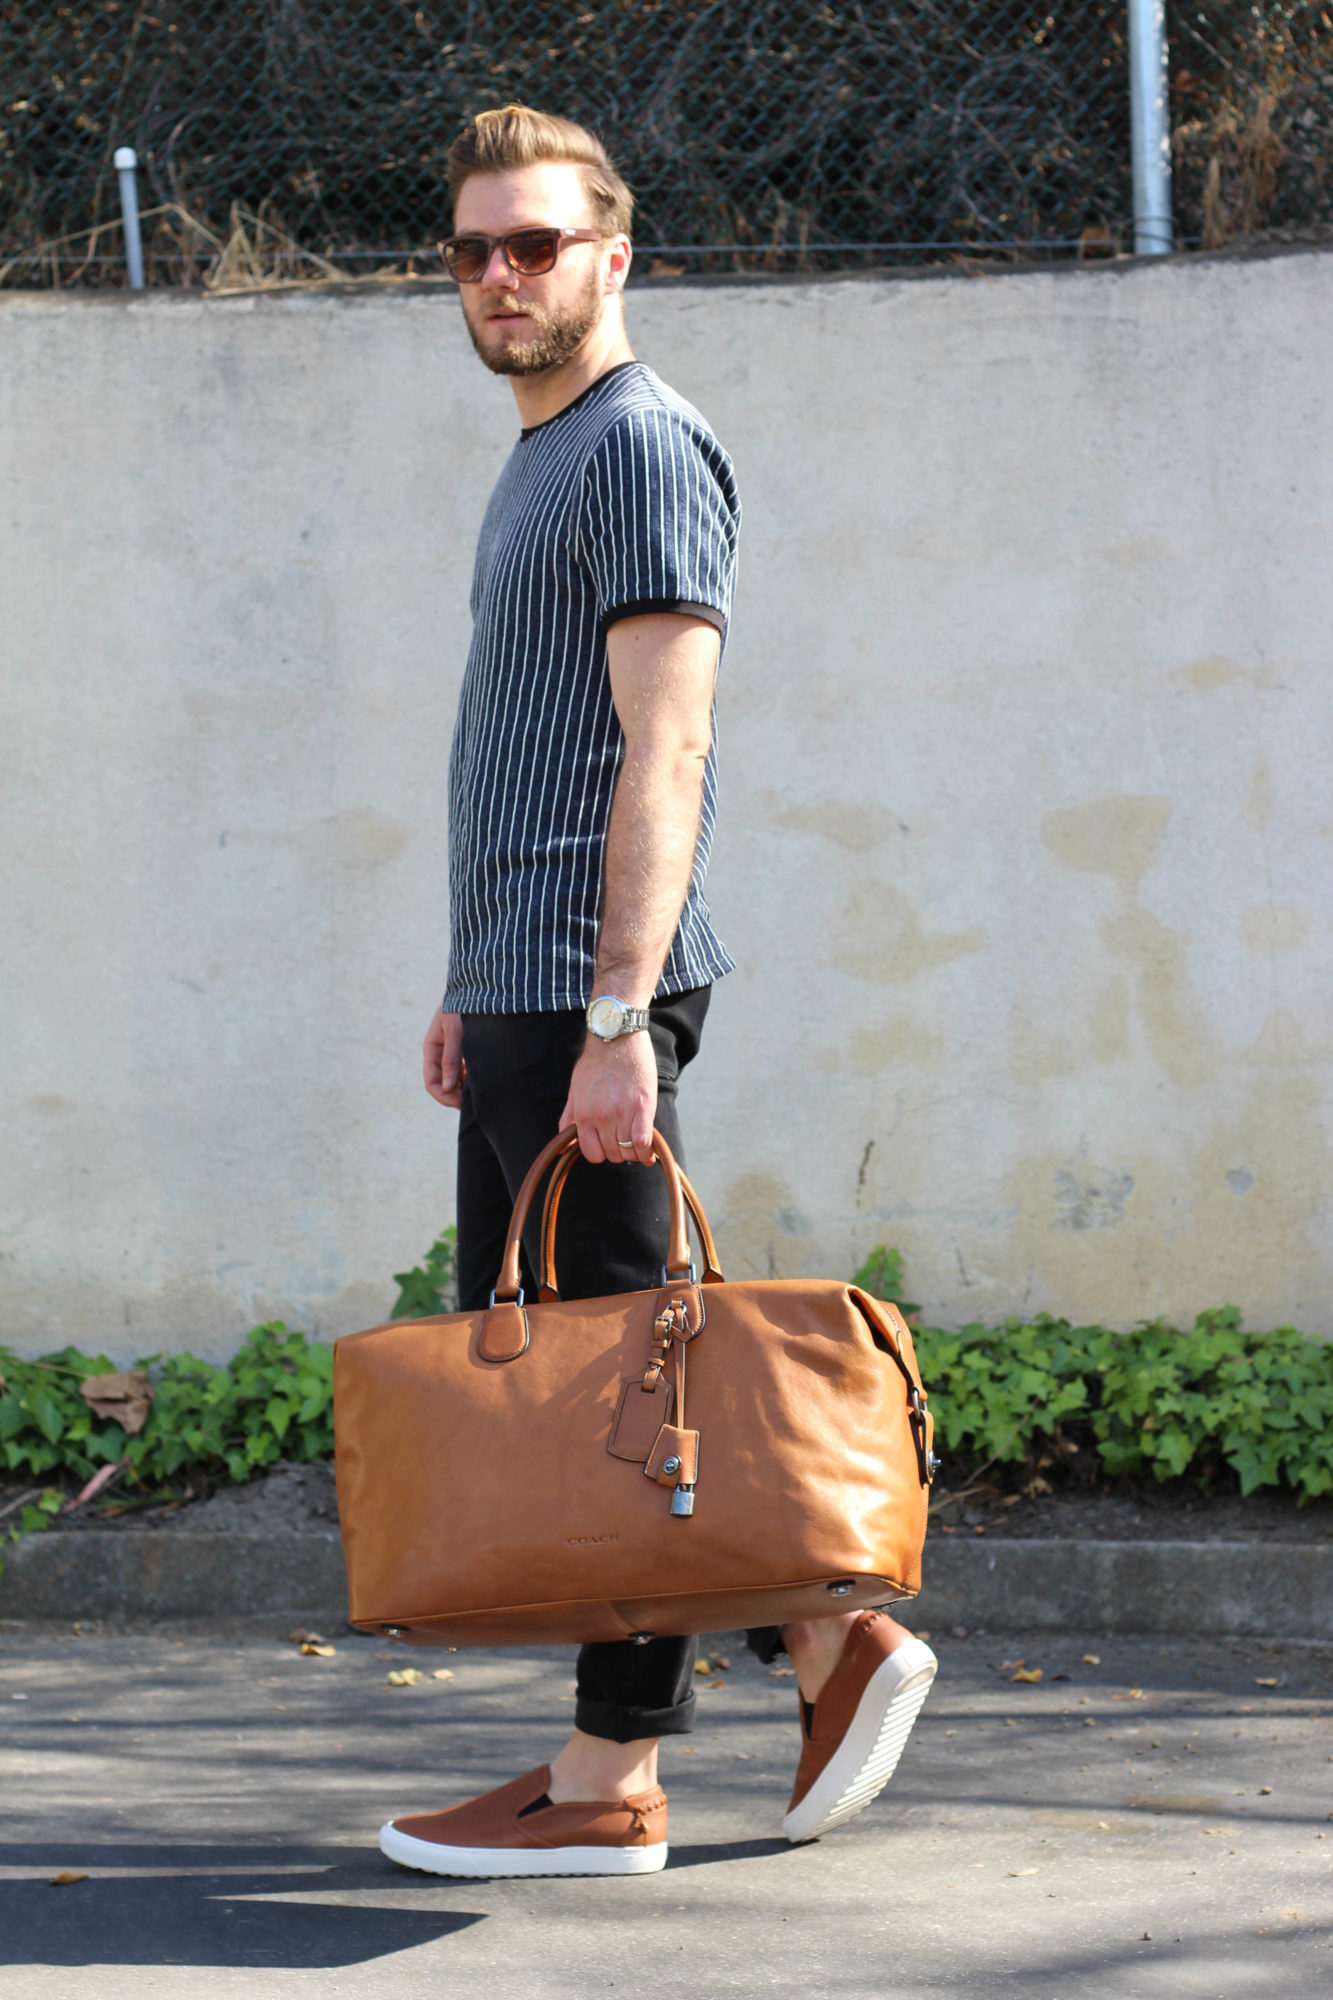 Coach Leather Luggage and Shoes-10